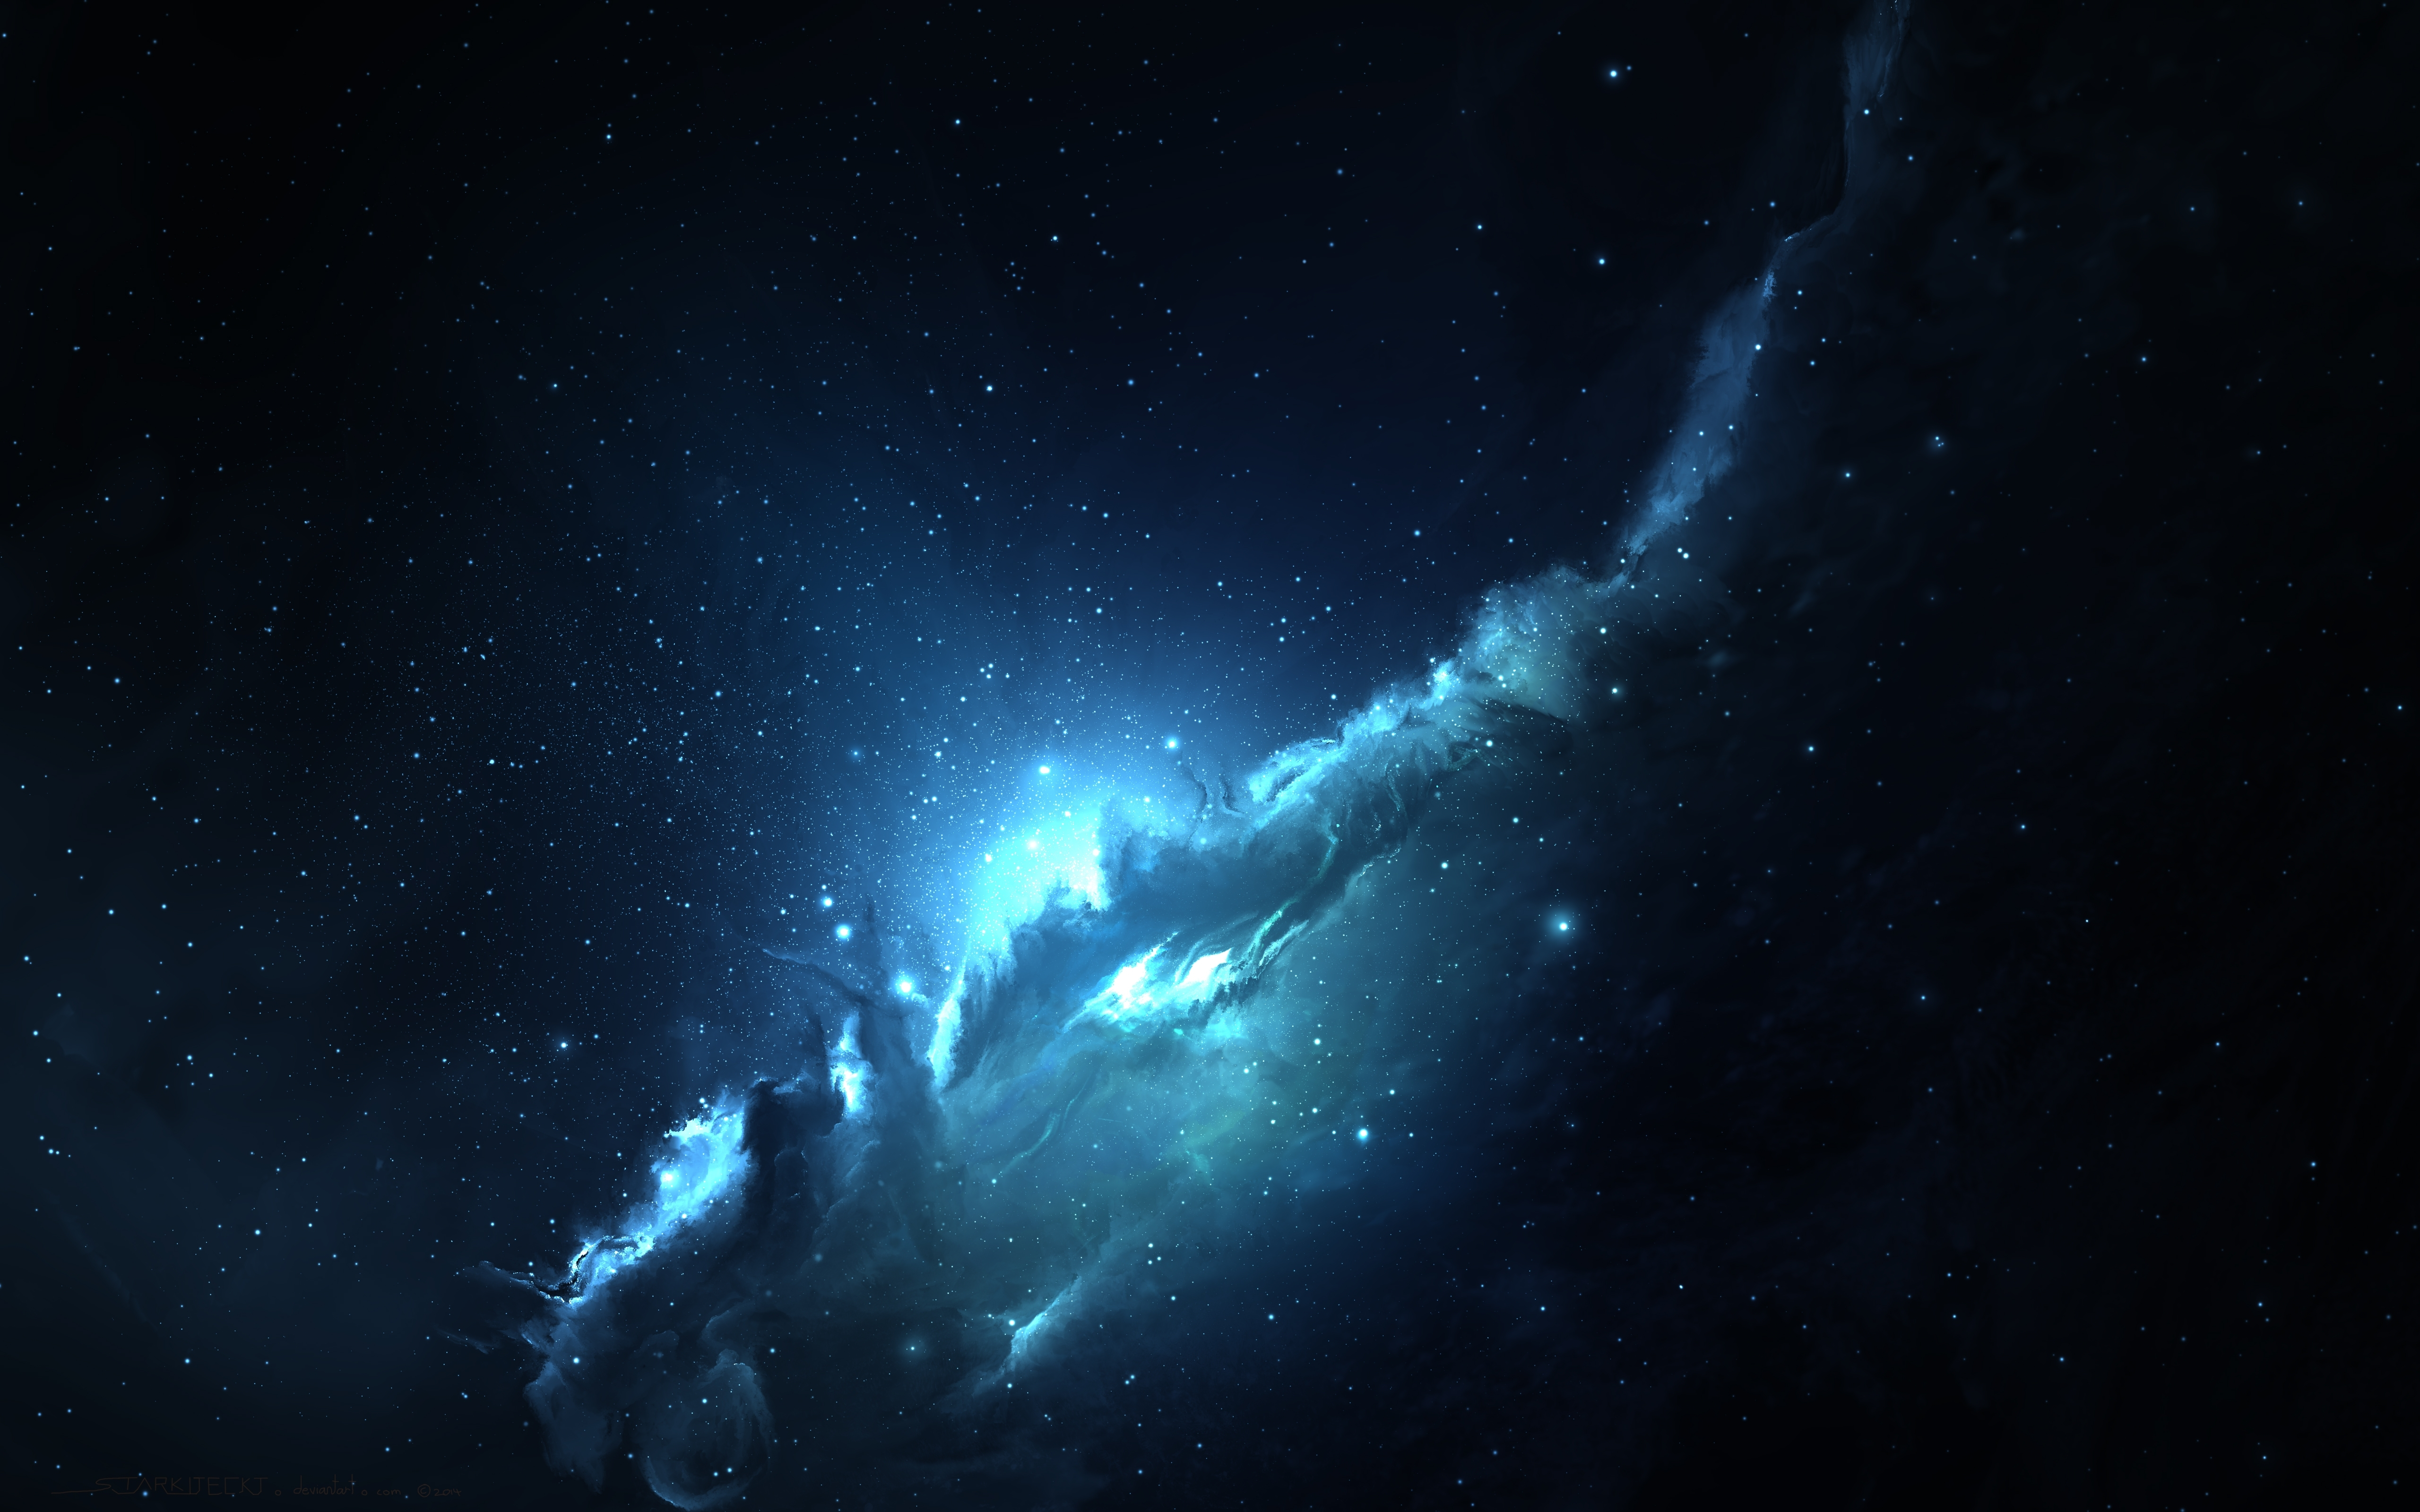 702 nebula hd wallpapers | background images - wallpaper abyss